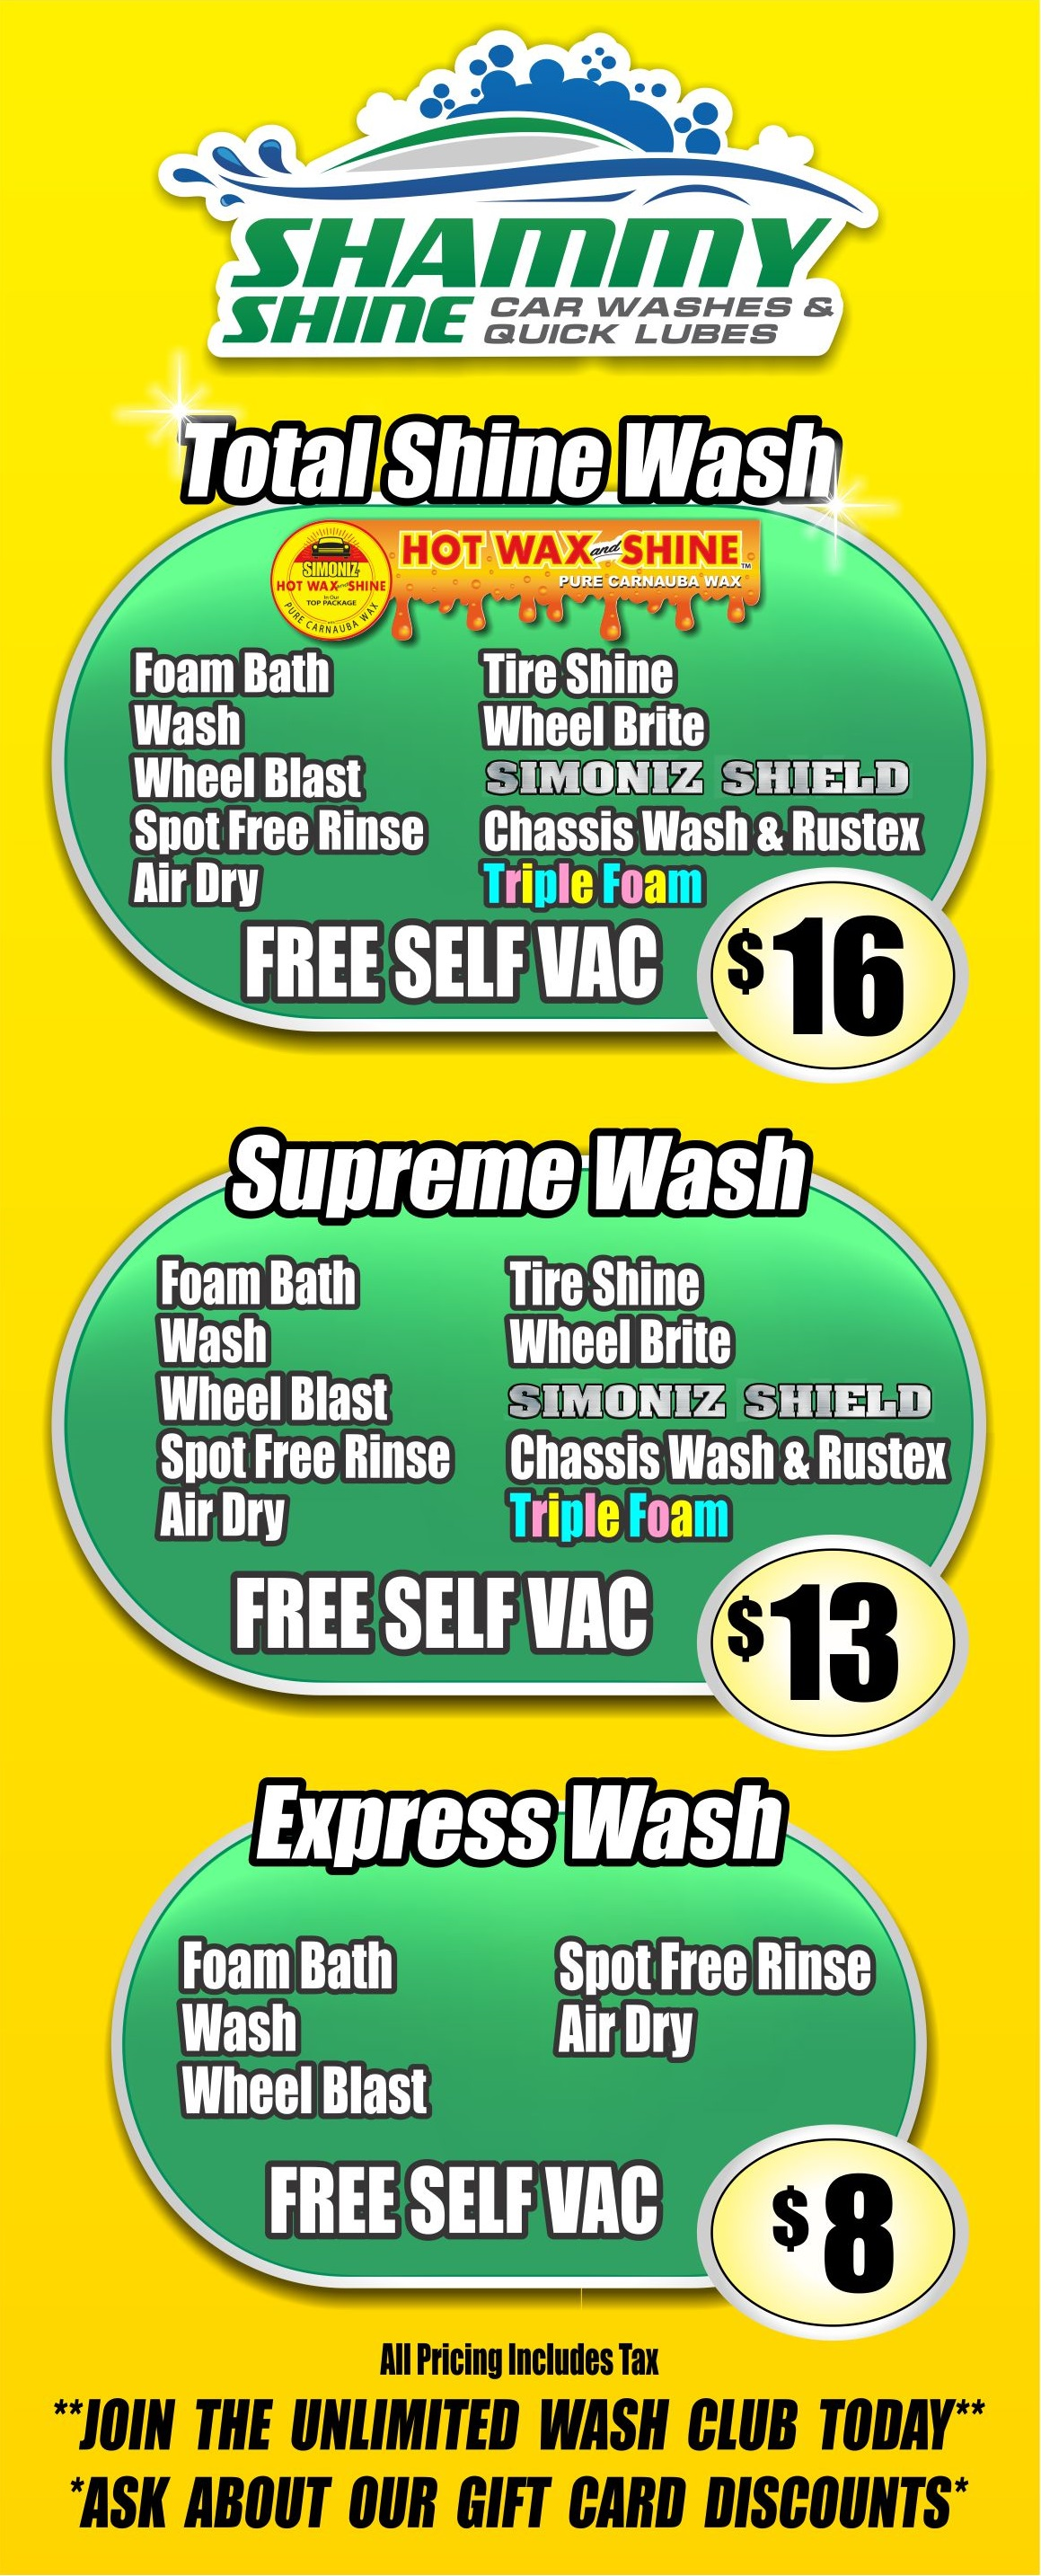 express menu boards free vacs